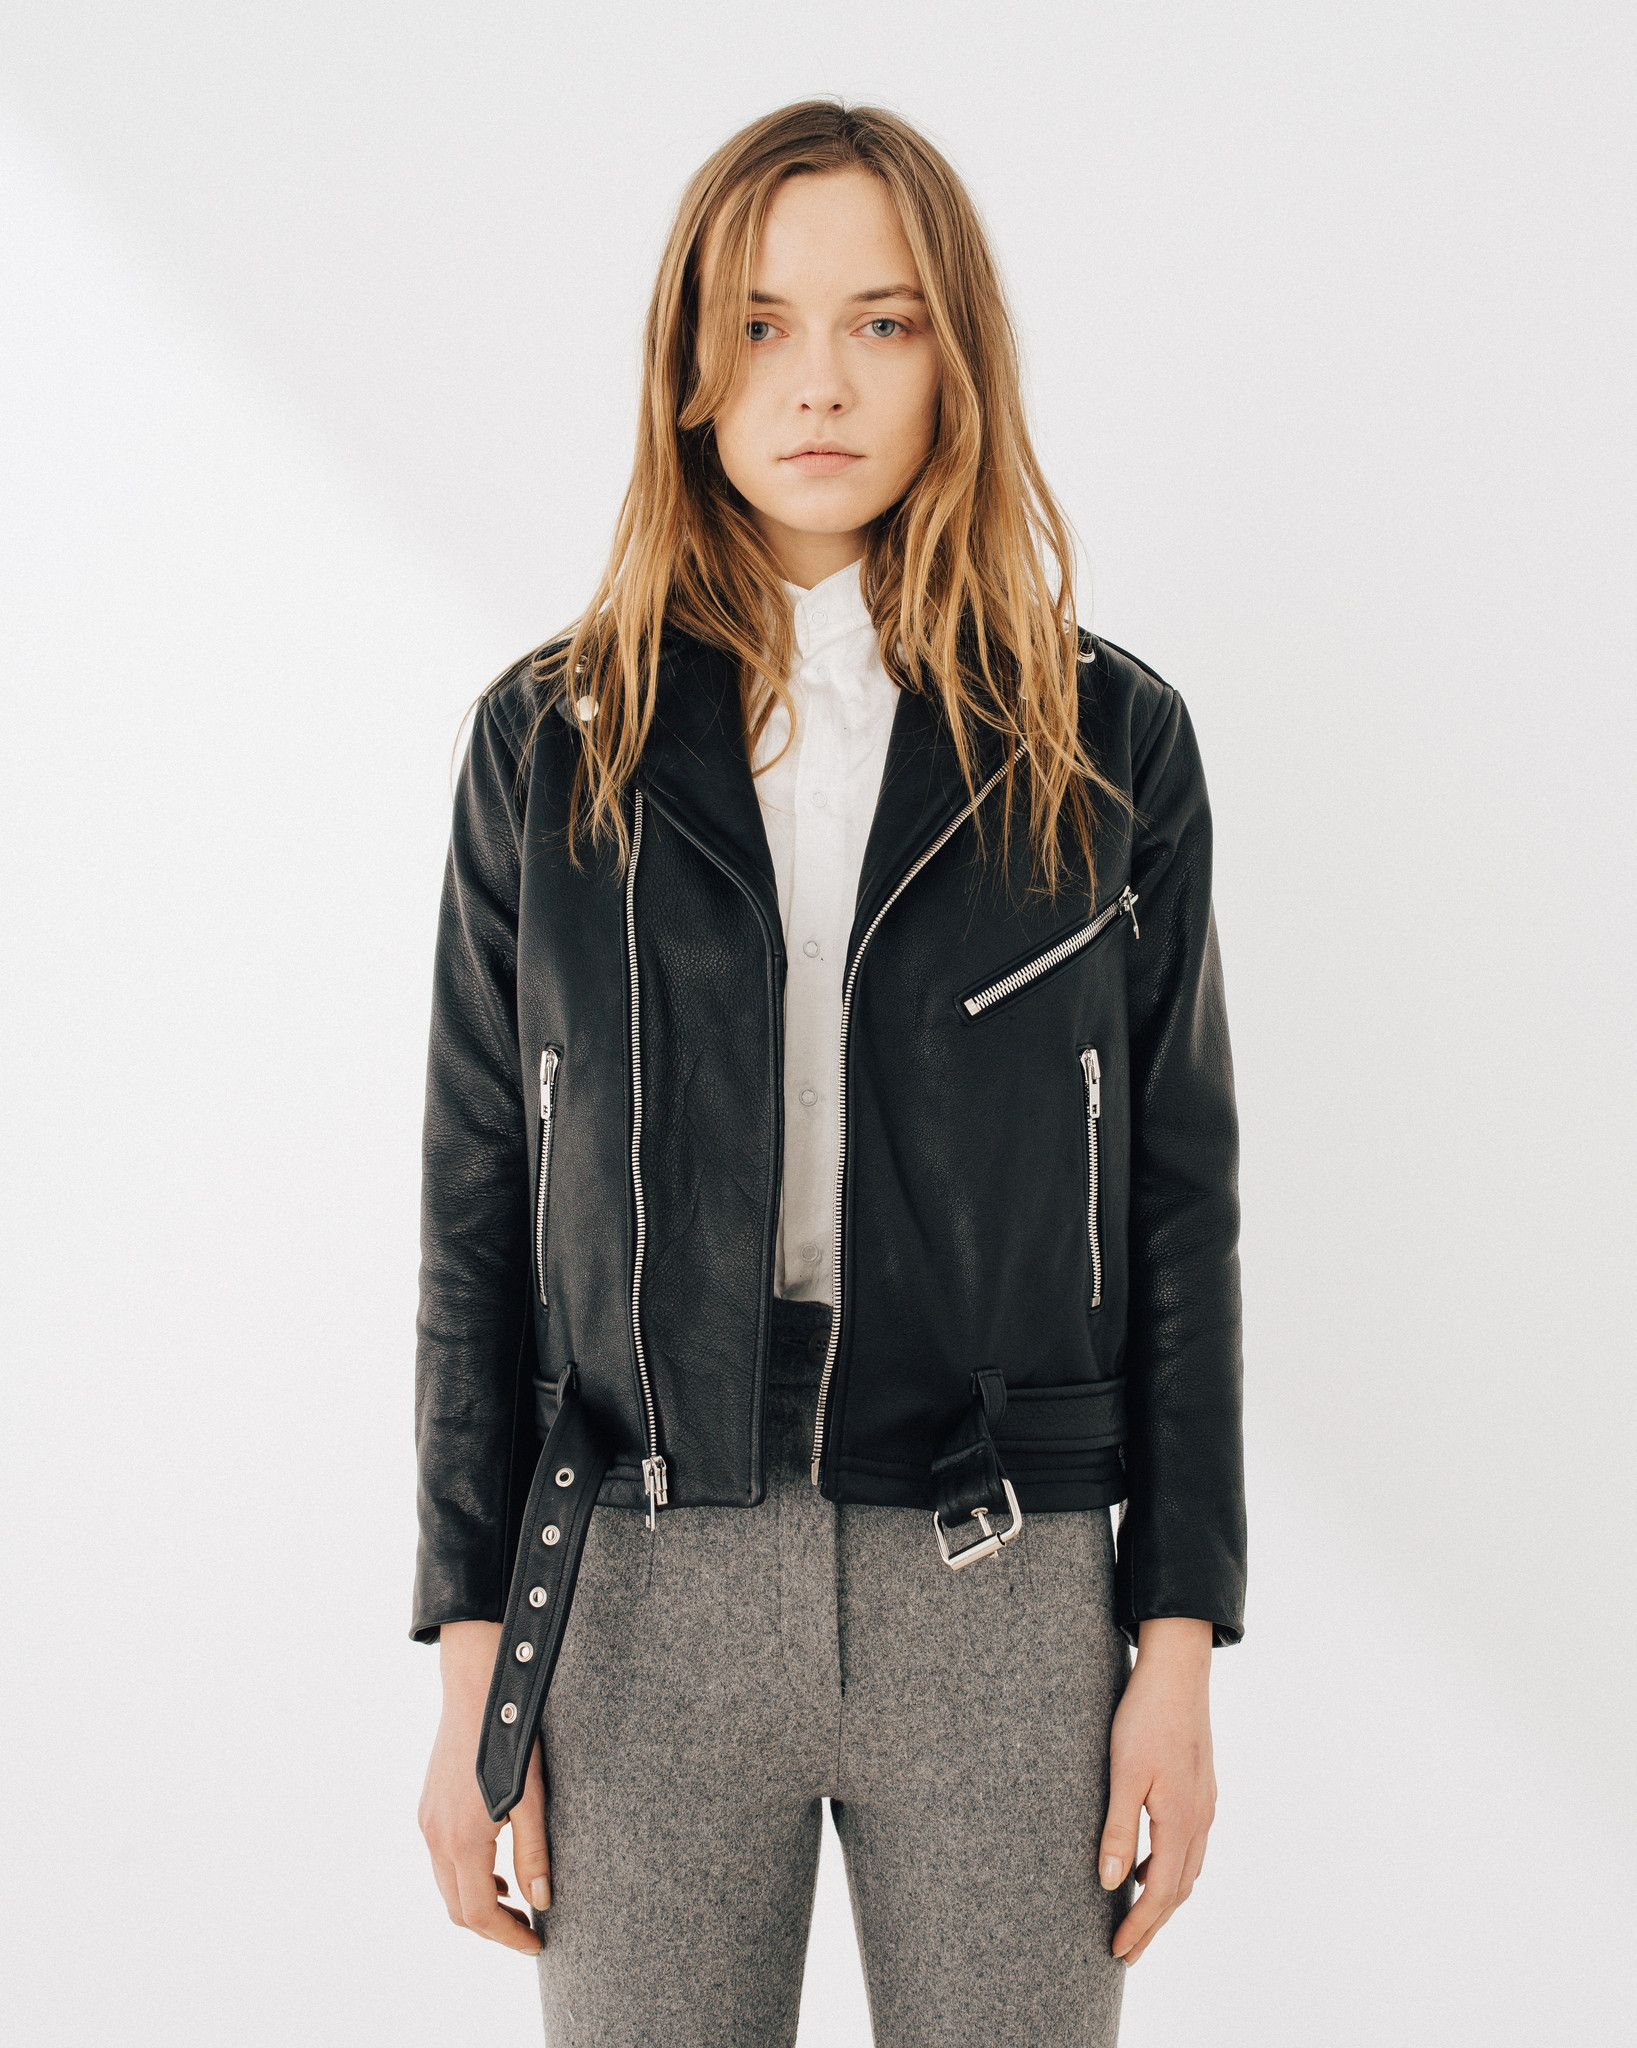 Classic Moto Jacket Fashion How To Wear Style